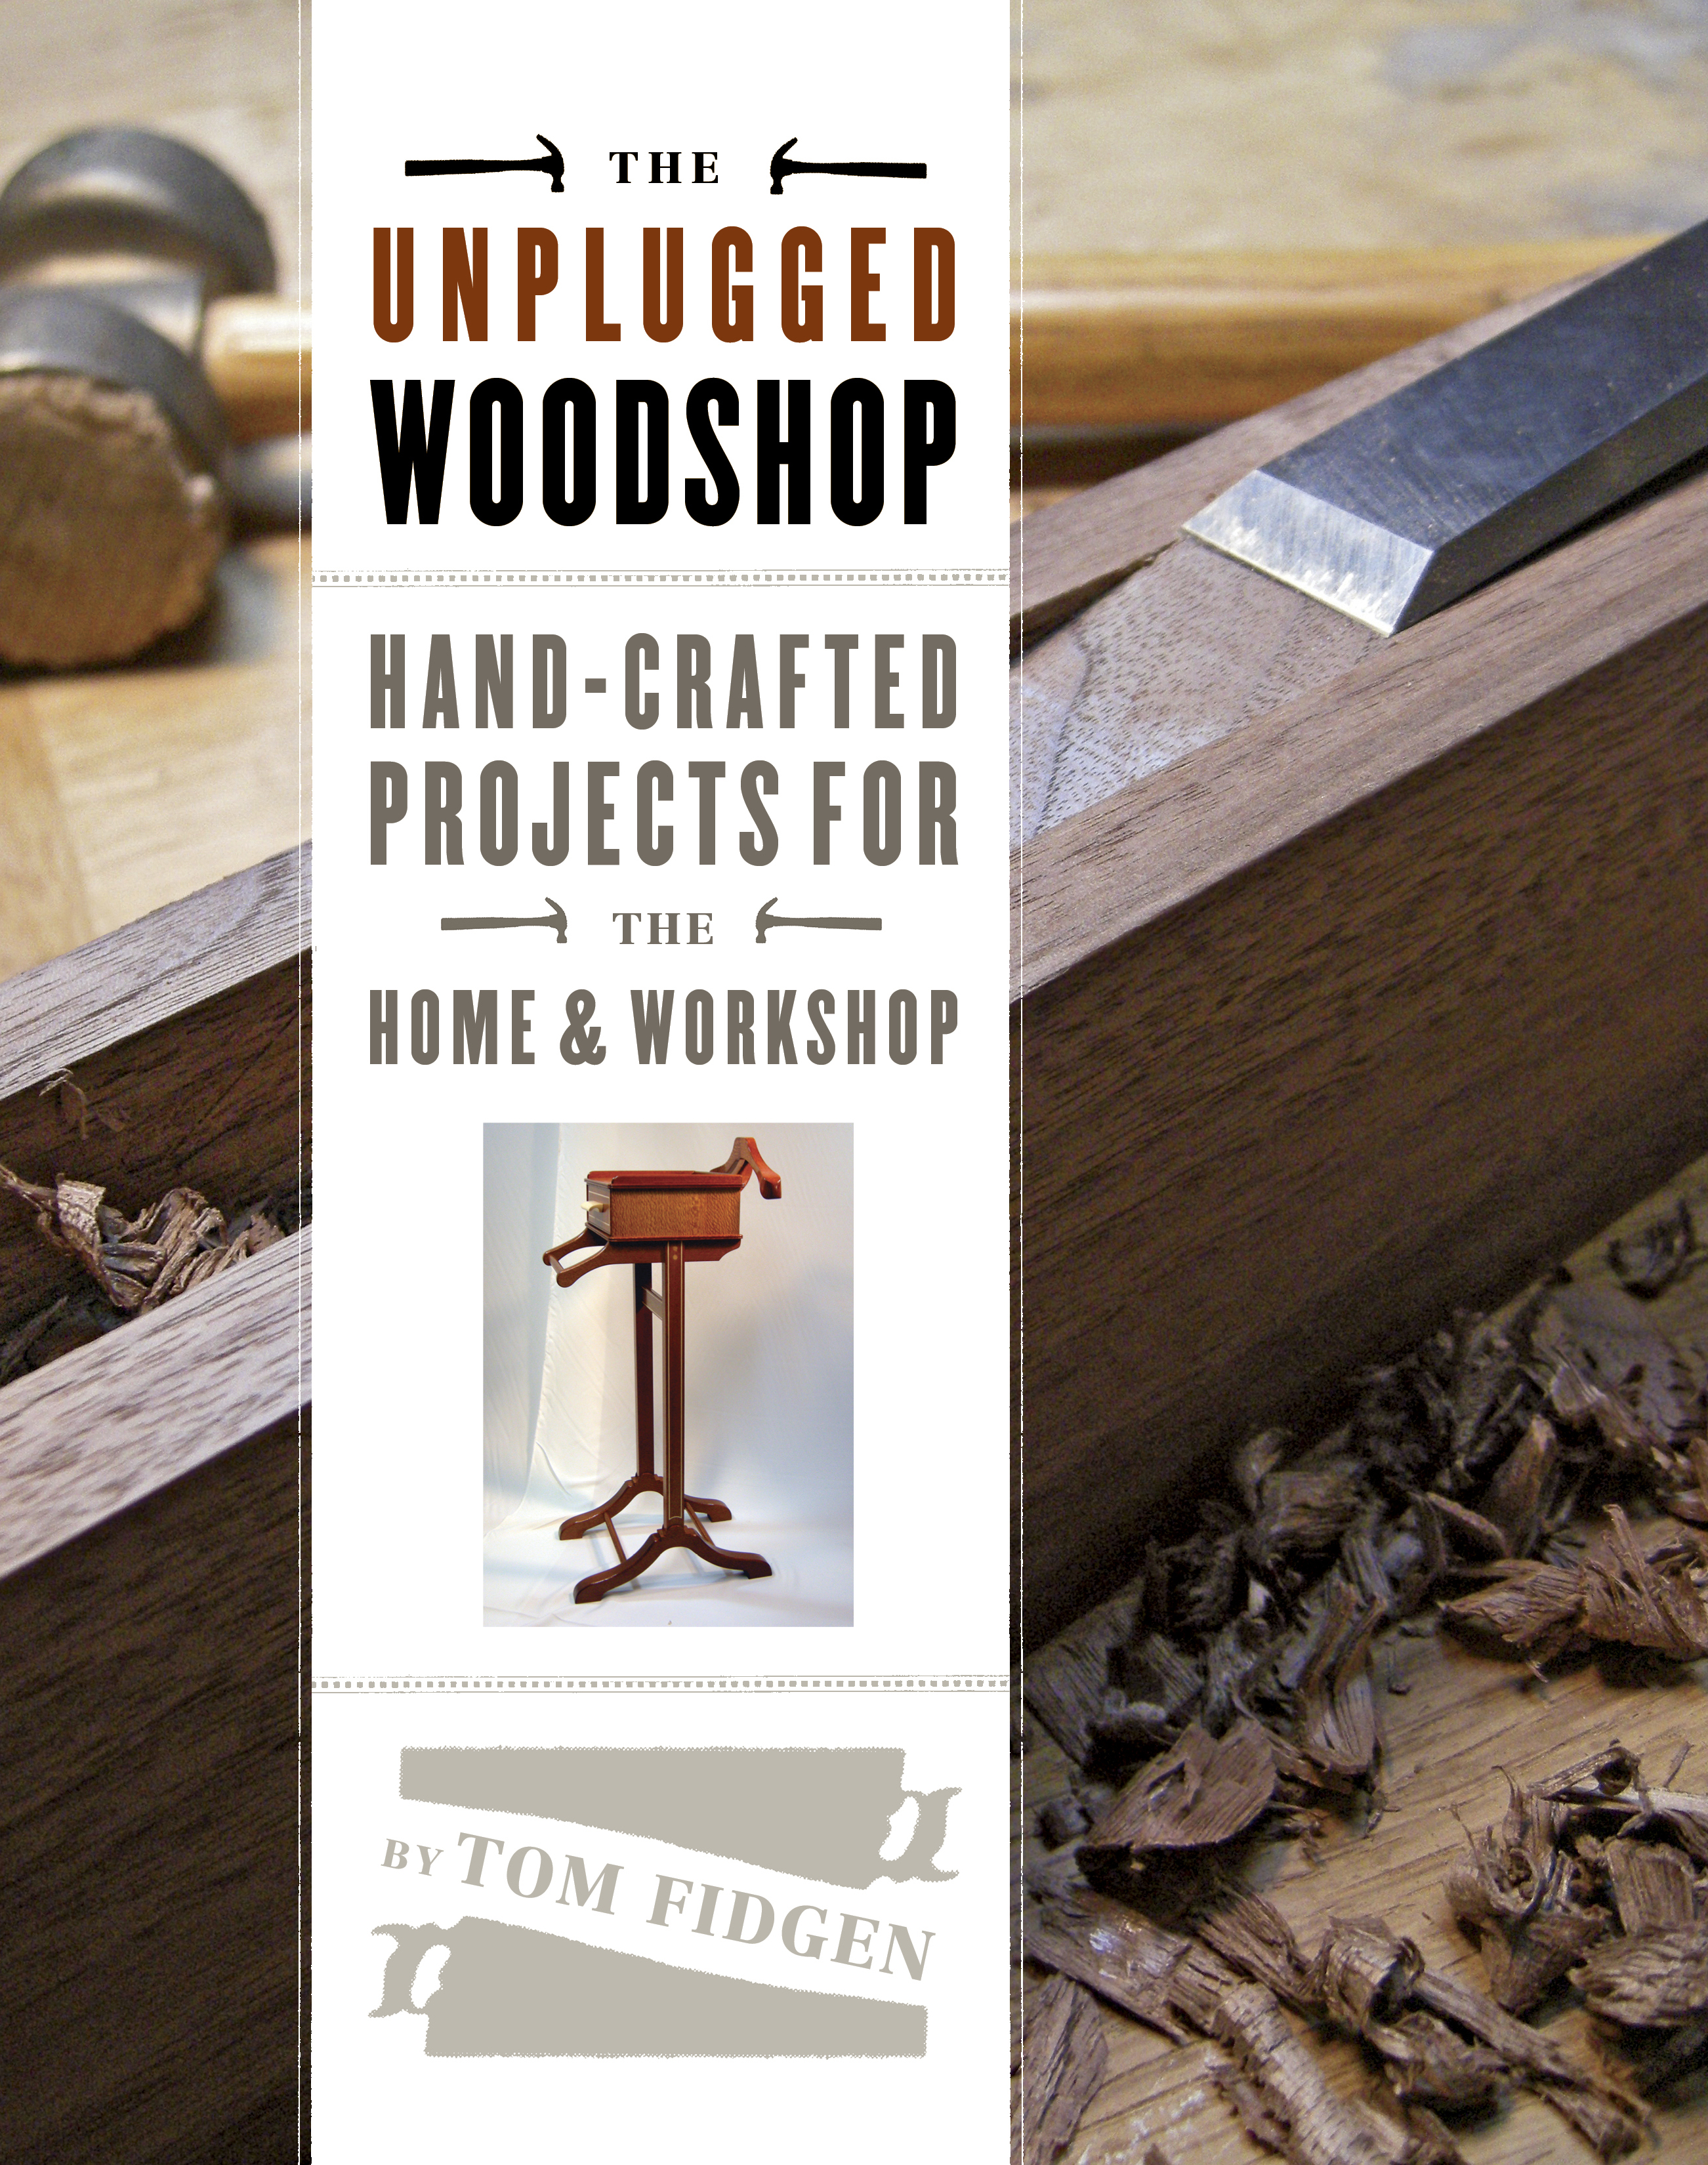 the unplugged woodshop booktom fidgen